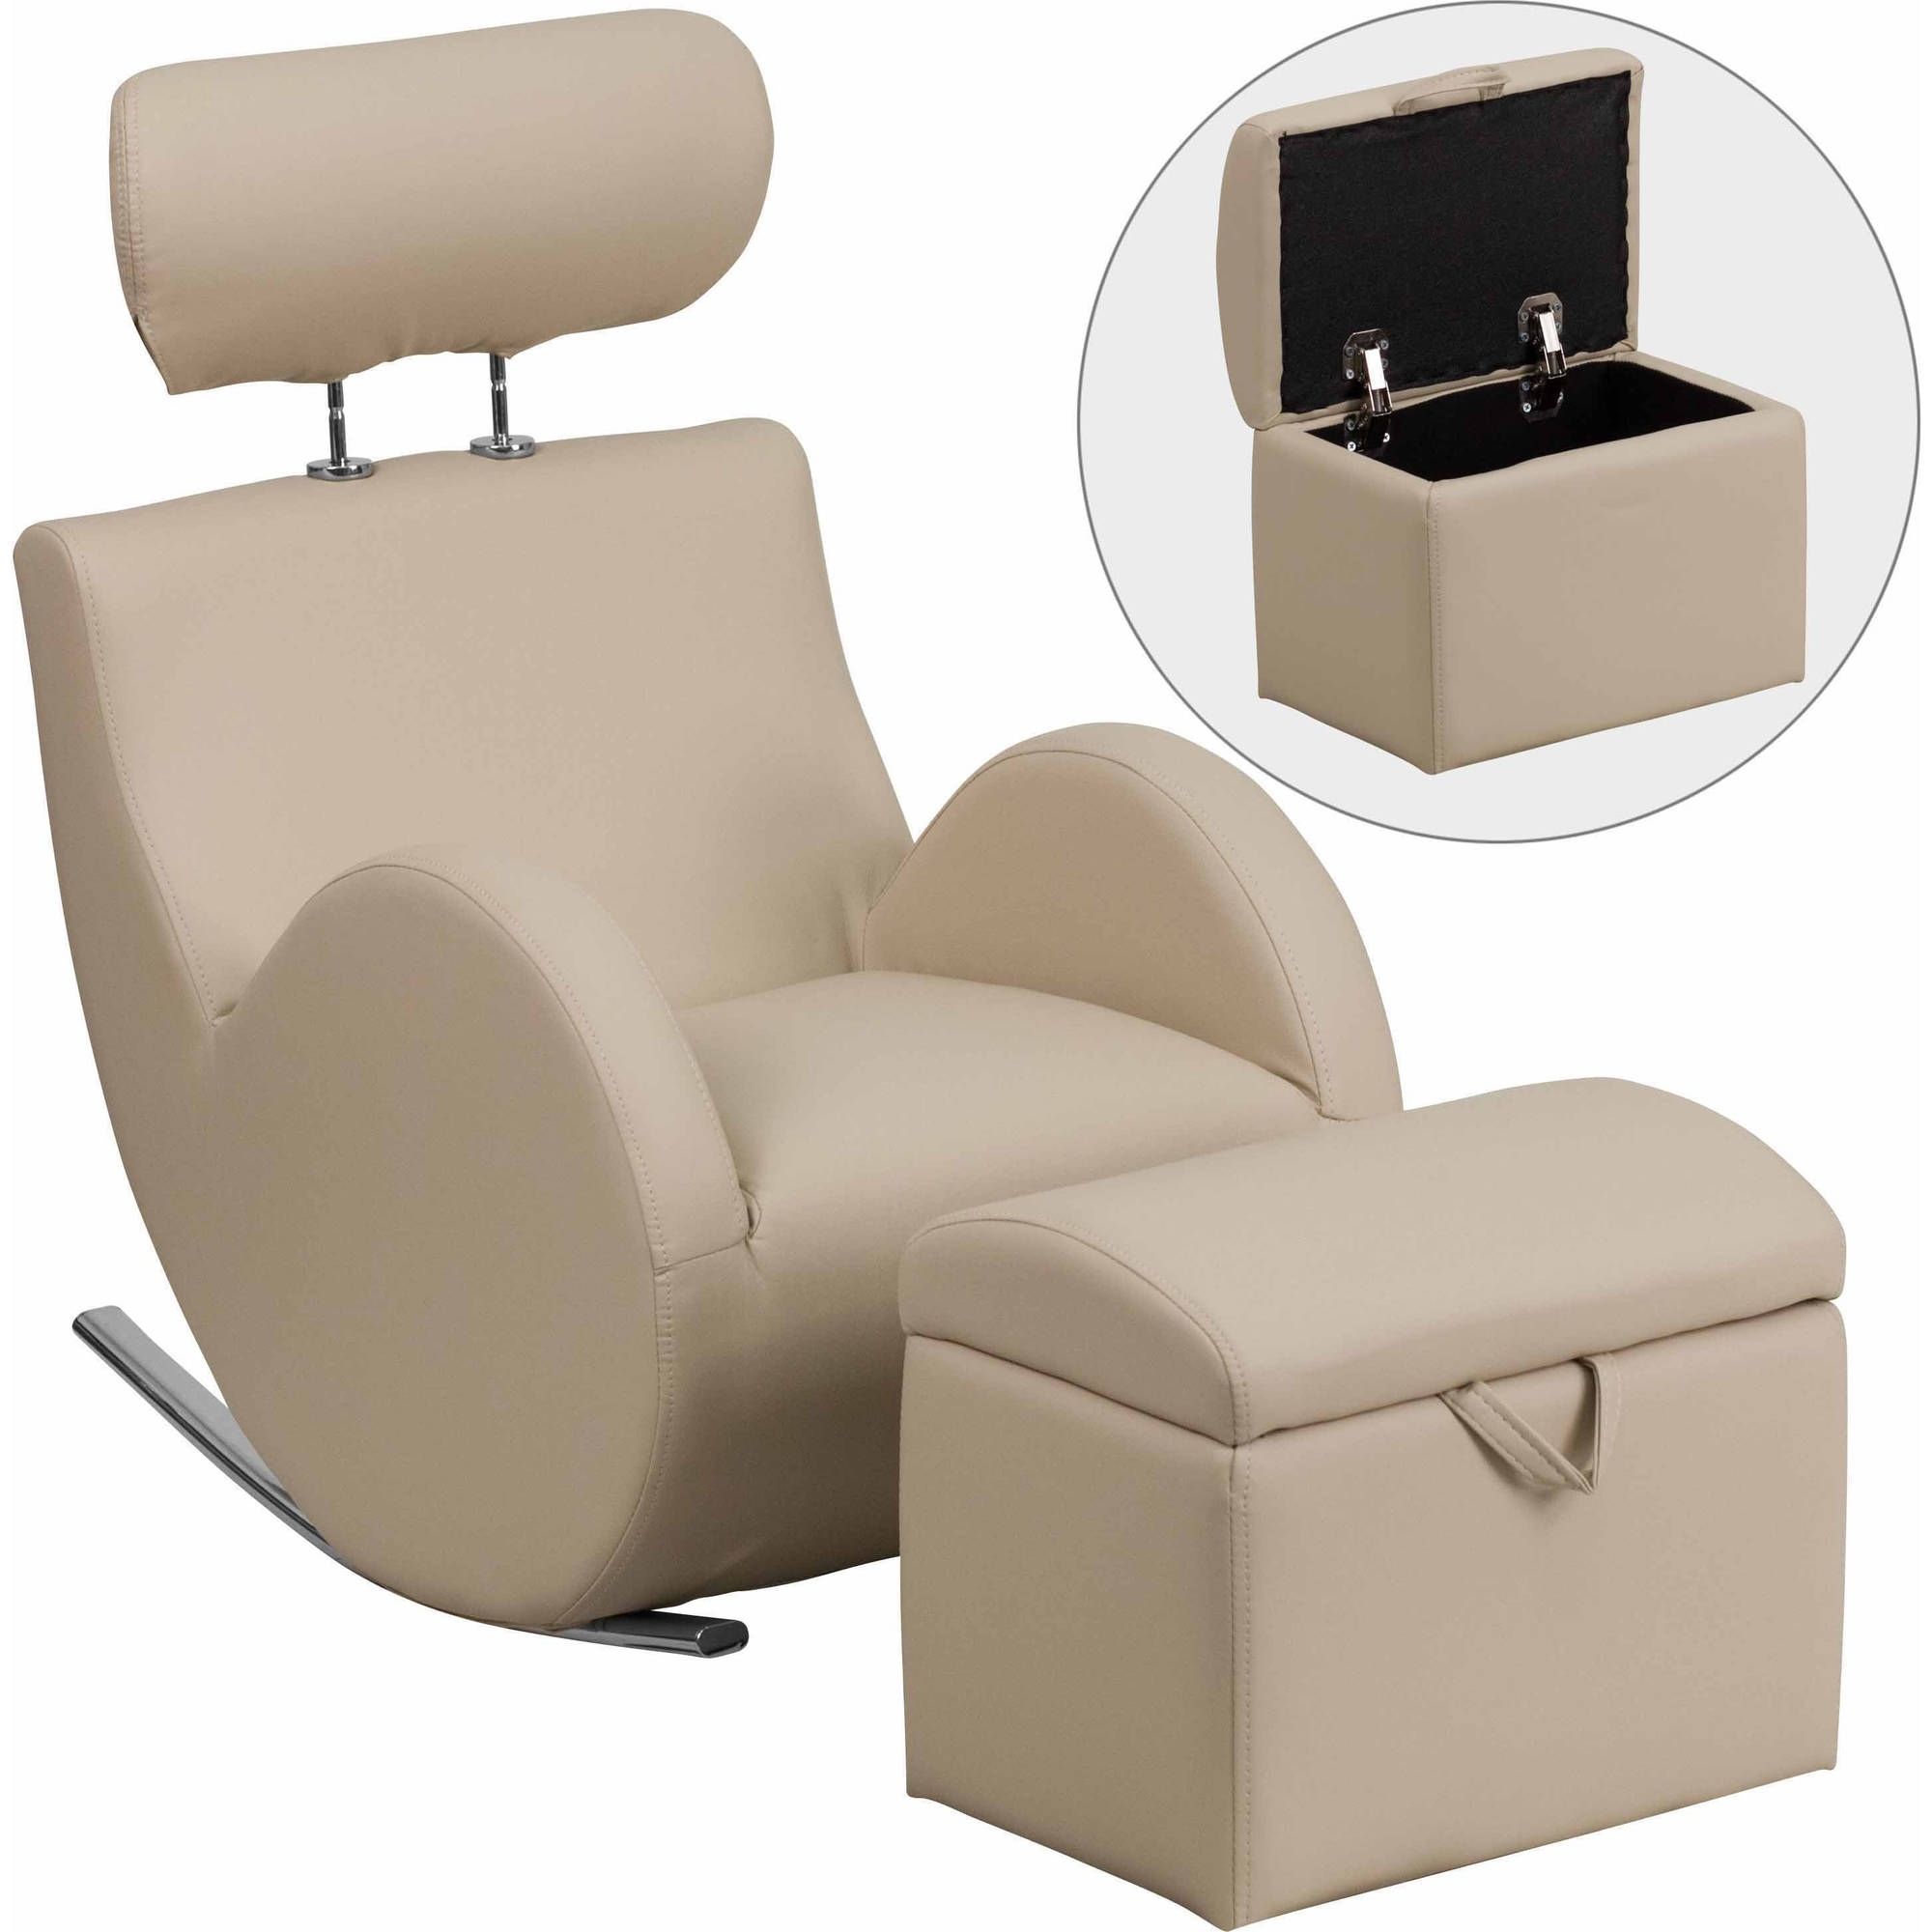 0Flash Furniture Hercules Series Beige Vinyl Rocking Chair W/storage Intended For Rocking Chairs With Ottoman (#1 of 15)